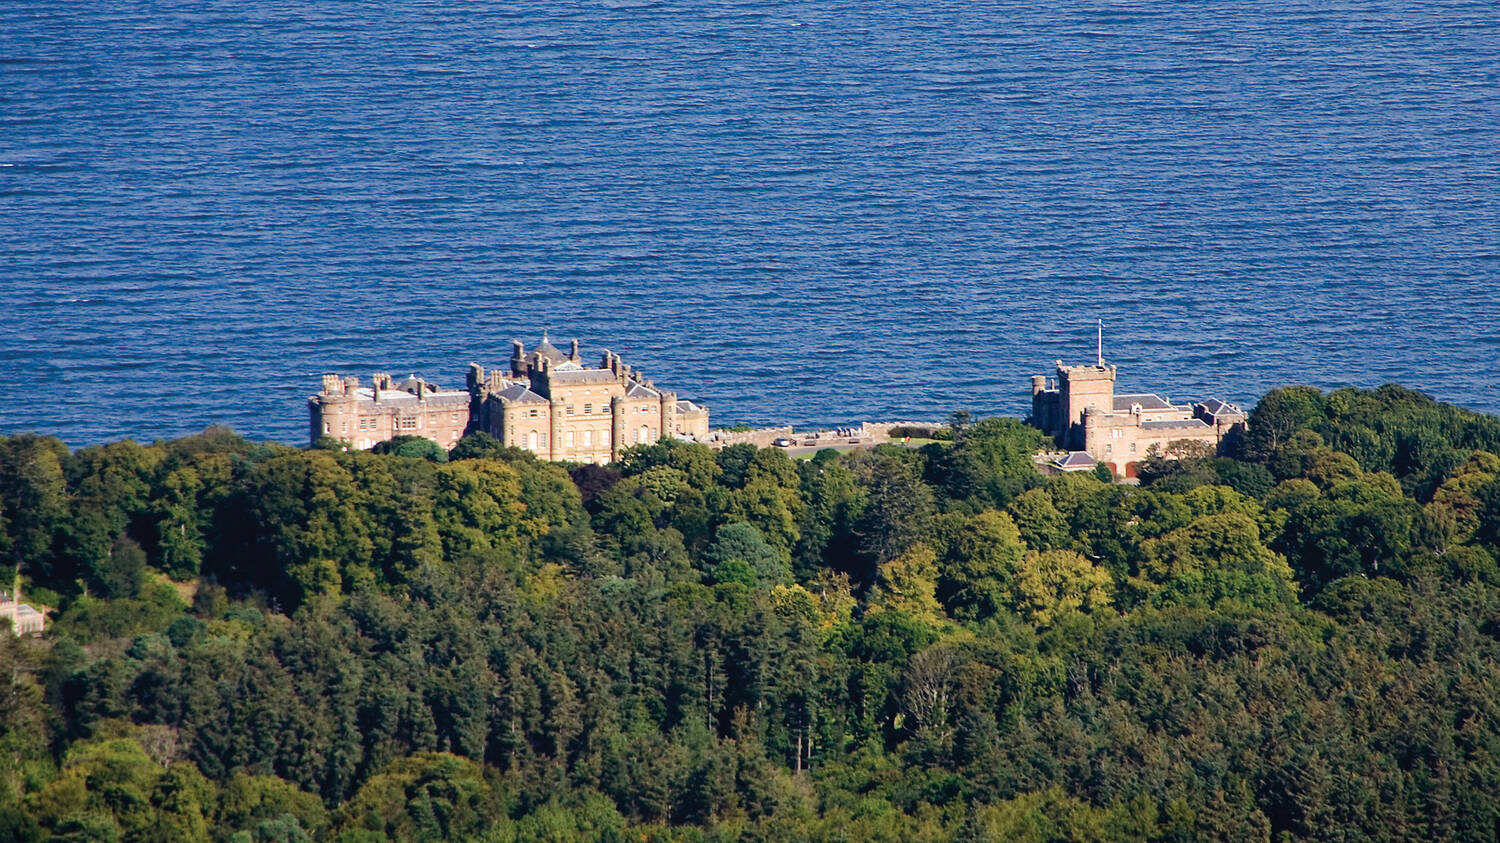 A view of Culzean Castle, seen from the air, looking towards the sea with woodland in the foreground.